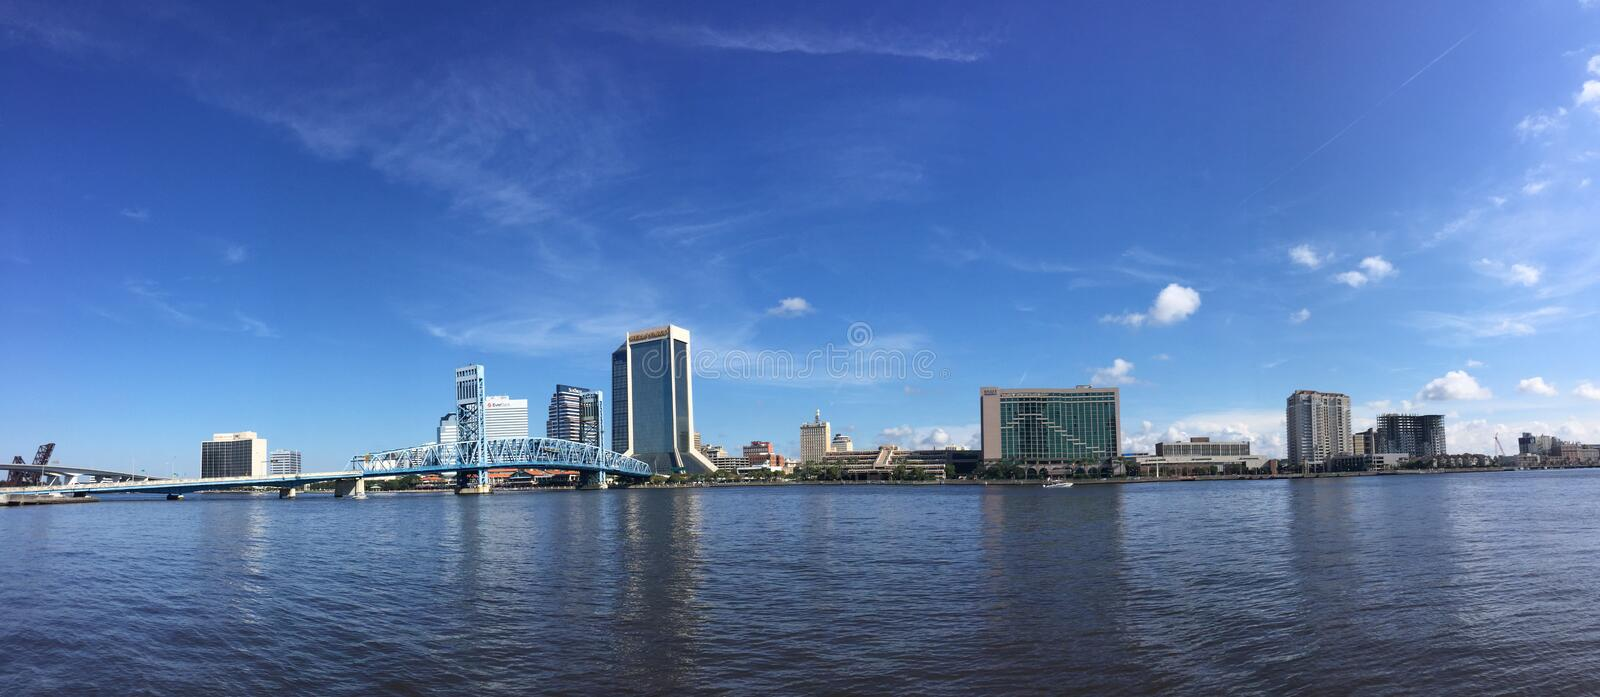 Panoramic of St. John's River and Jacksonville, FL royalty free stock photography